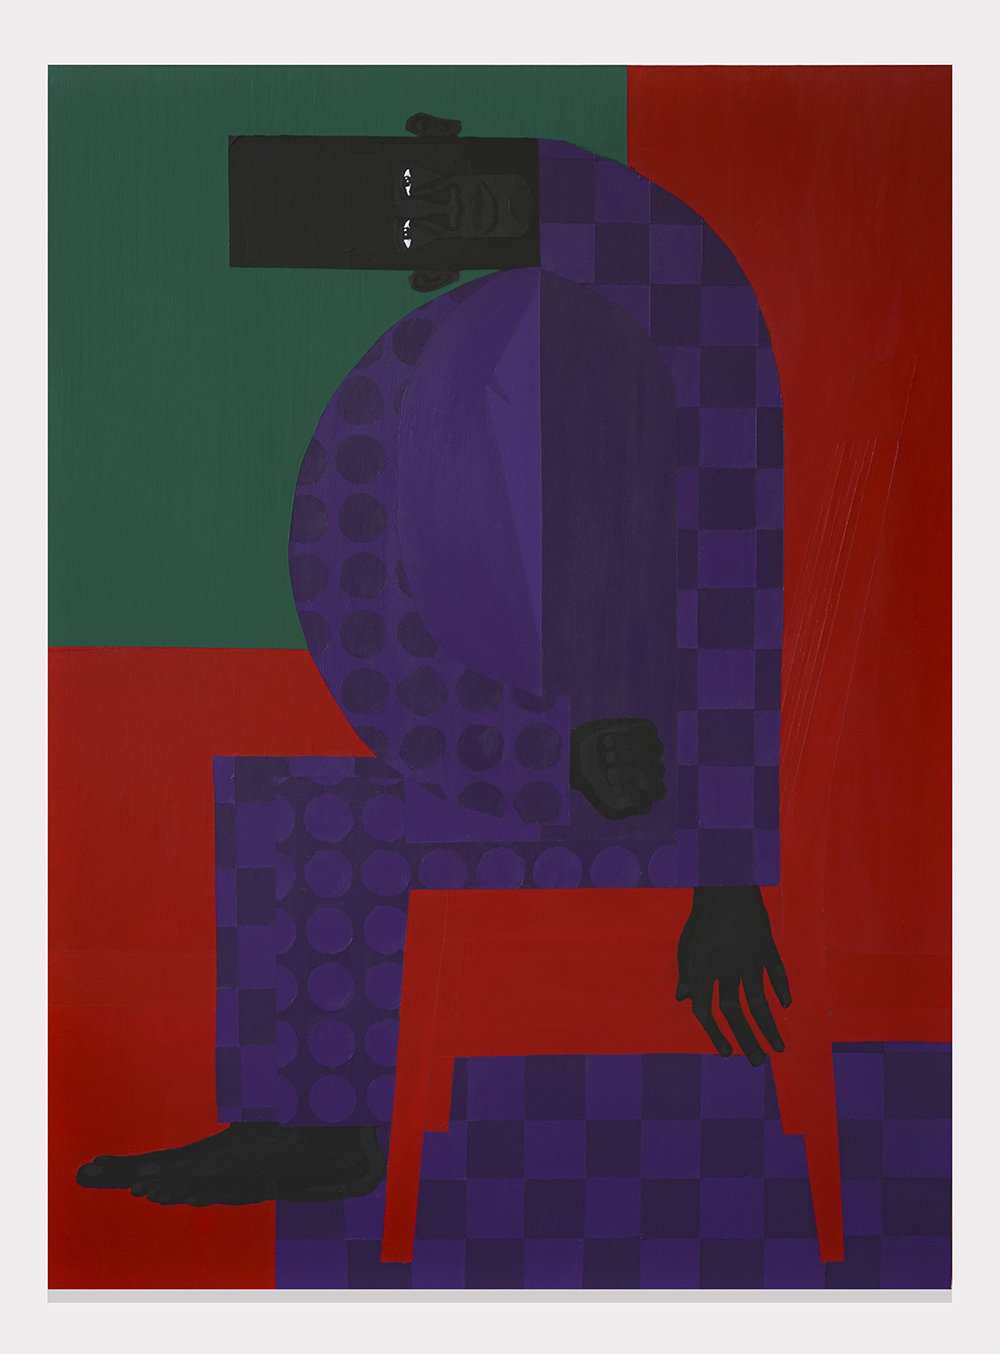 Jon Key.<em> The Man in the Violet Suit No. 13</em>, 2019. Acrylic on canvas, 48 x 36 inches (121.9 x 91.4 cm)